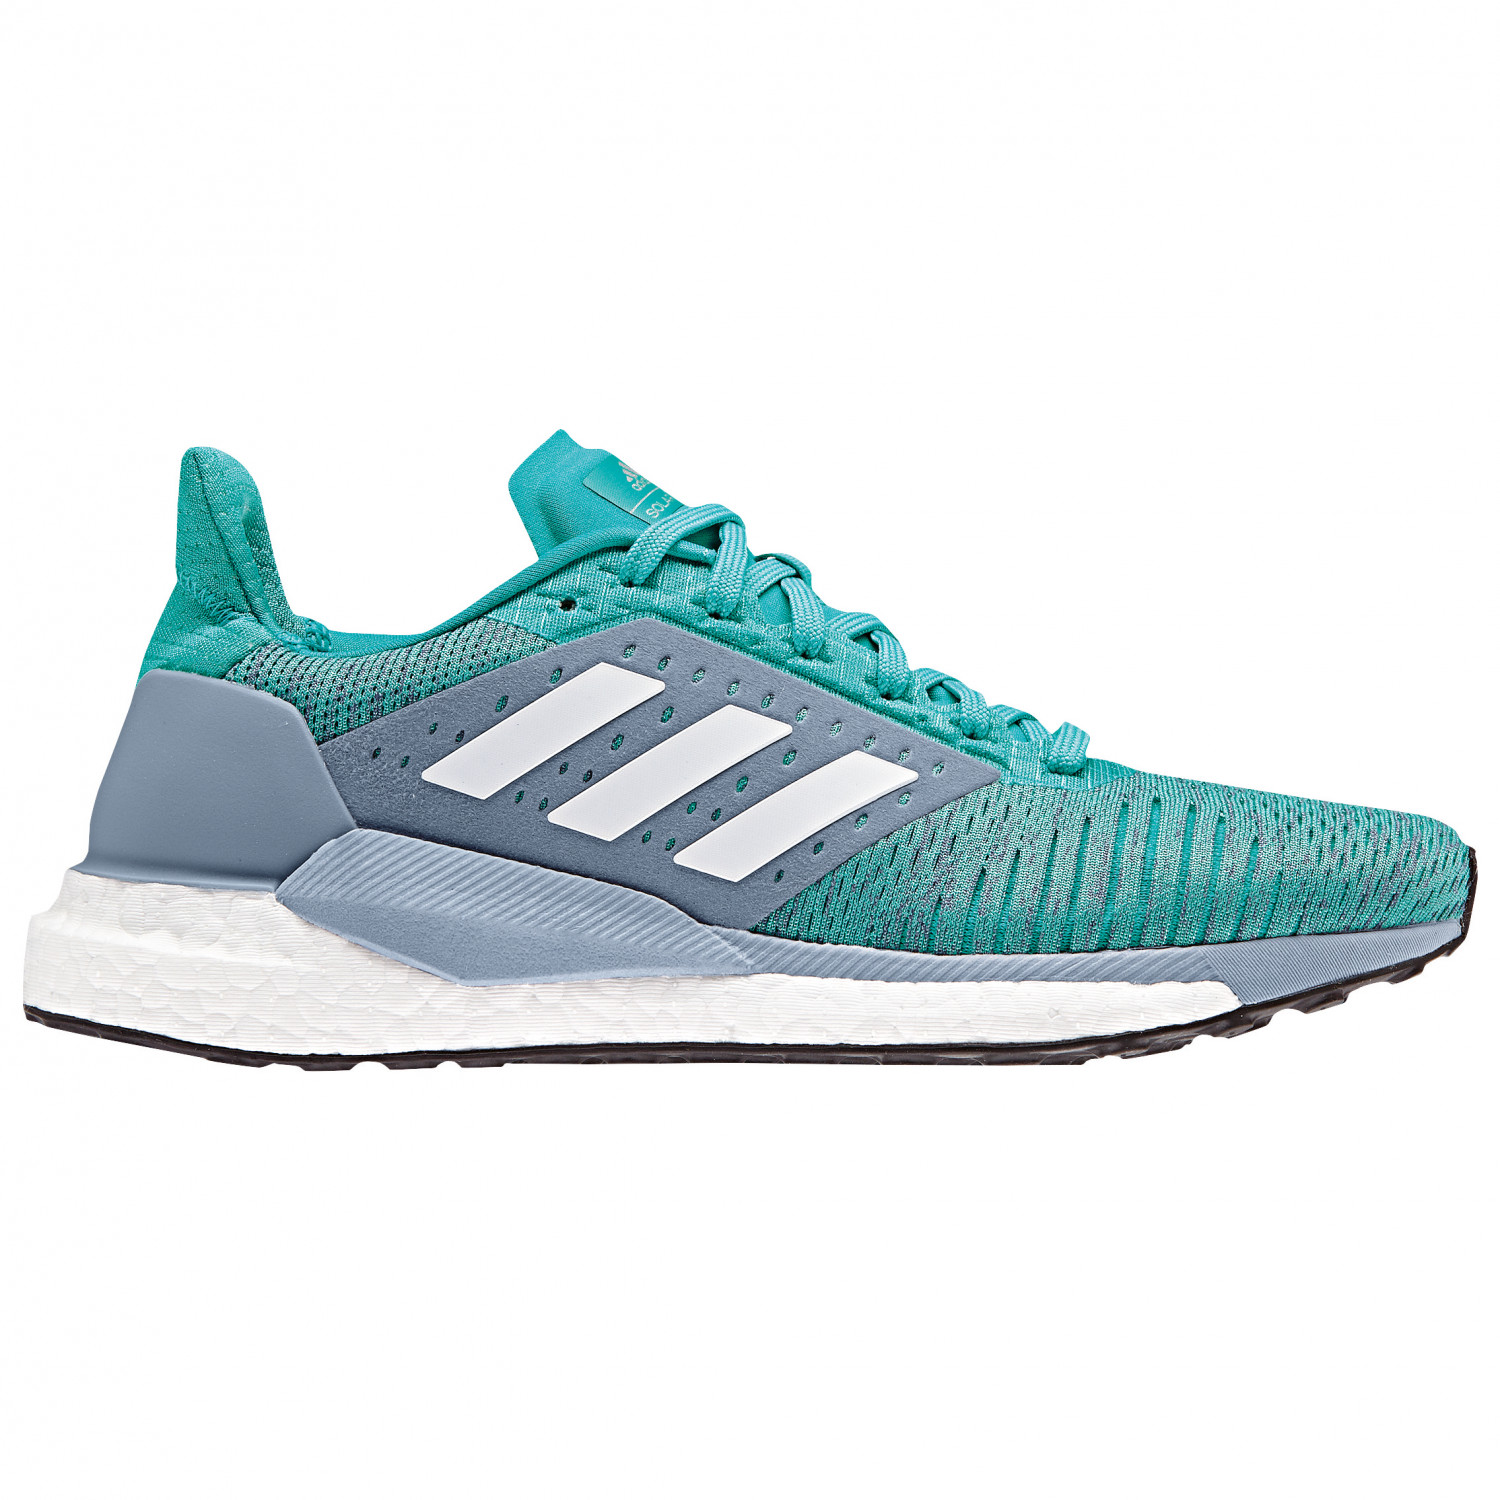 reputable site d8f1e 167fa Adidas Solar Glide ST - Running shoes Womens  Free EU Delive